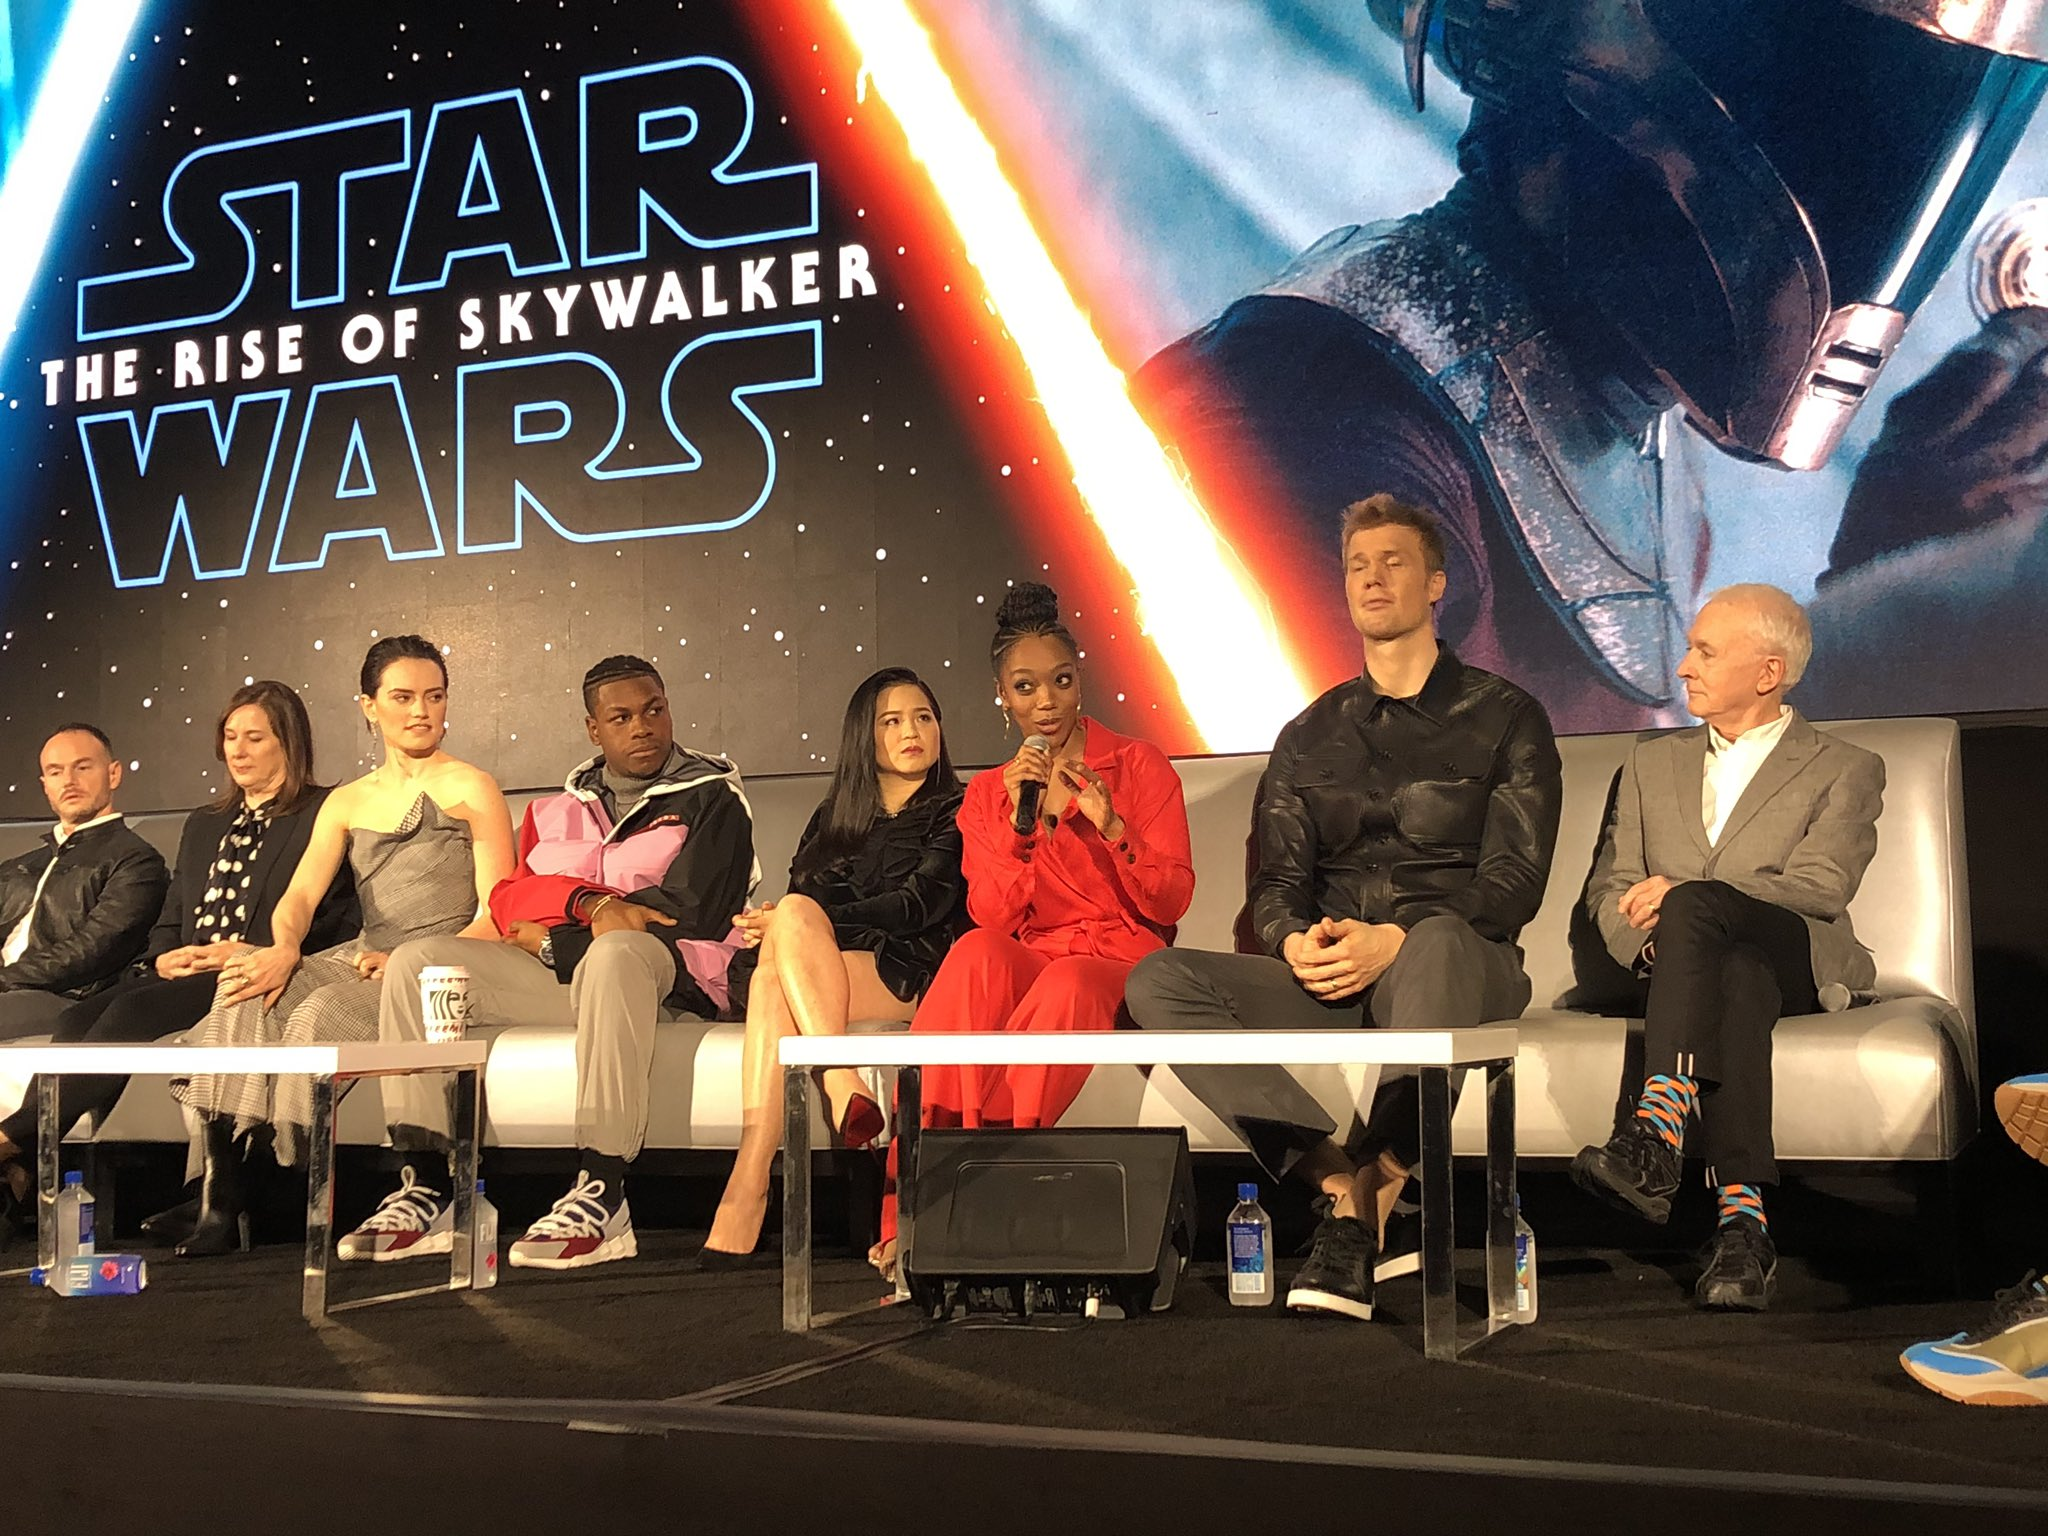 Episode IX: The Rise of Skywalker Press Tour & Interviews - Page 16 EK9qT5uU0AA0cUS?format=jpg&name=4096x4096